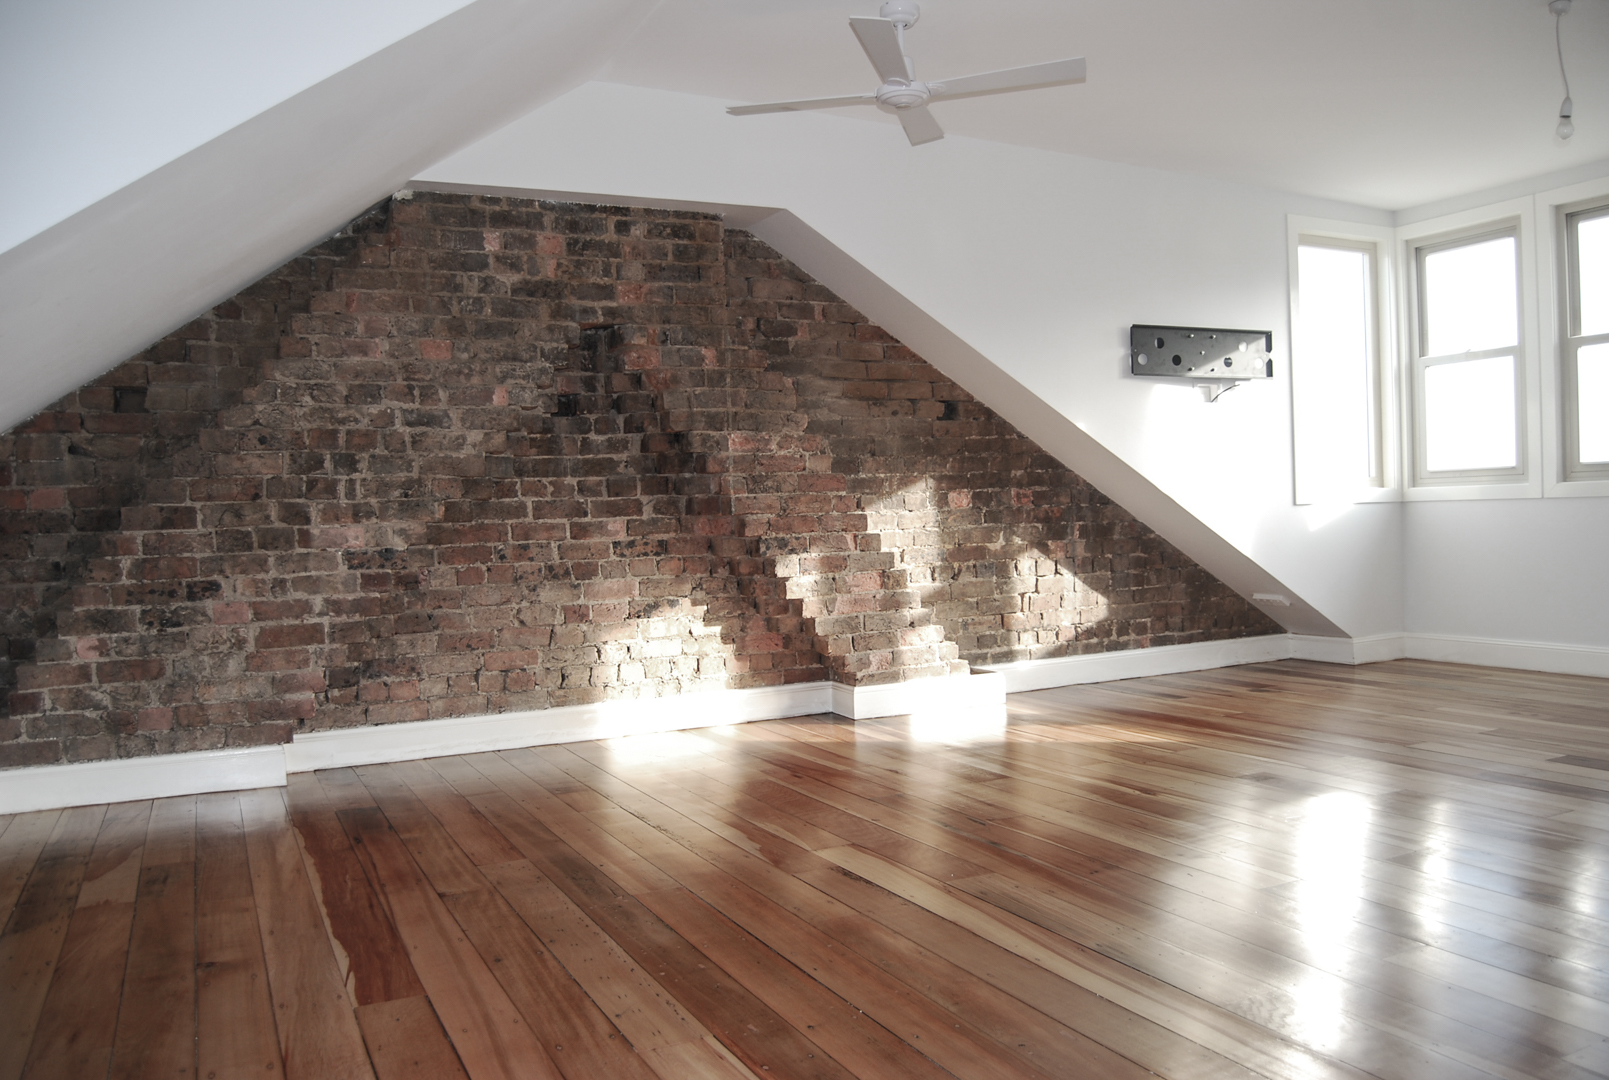 Existing brickwork combined with new walls in attic conversion